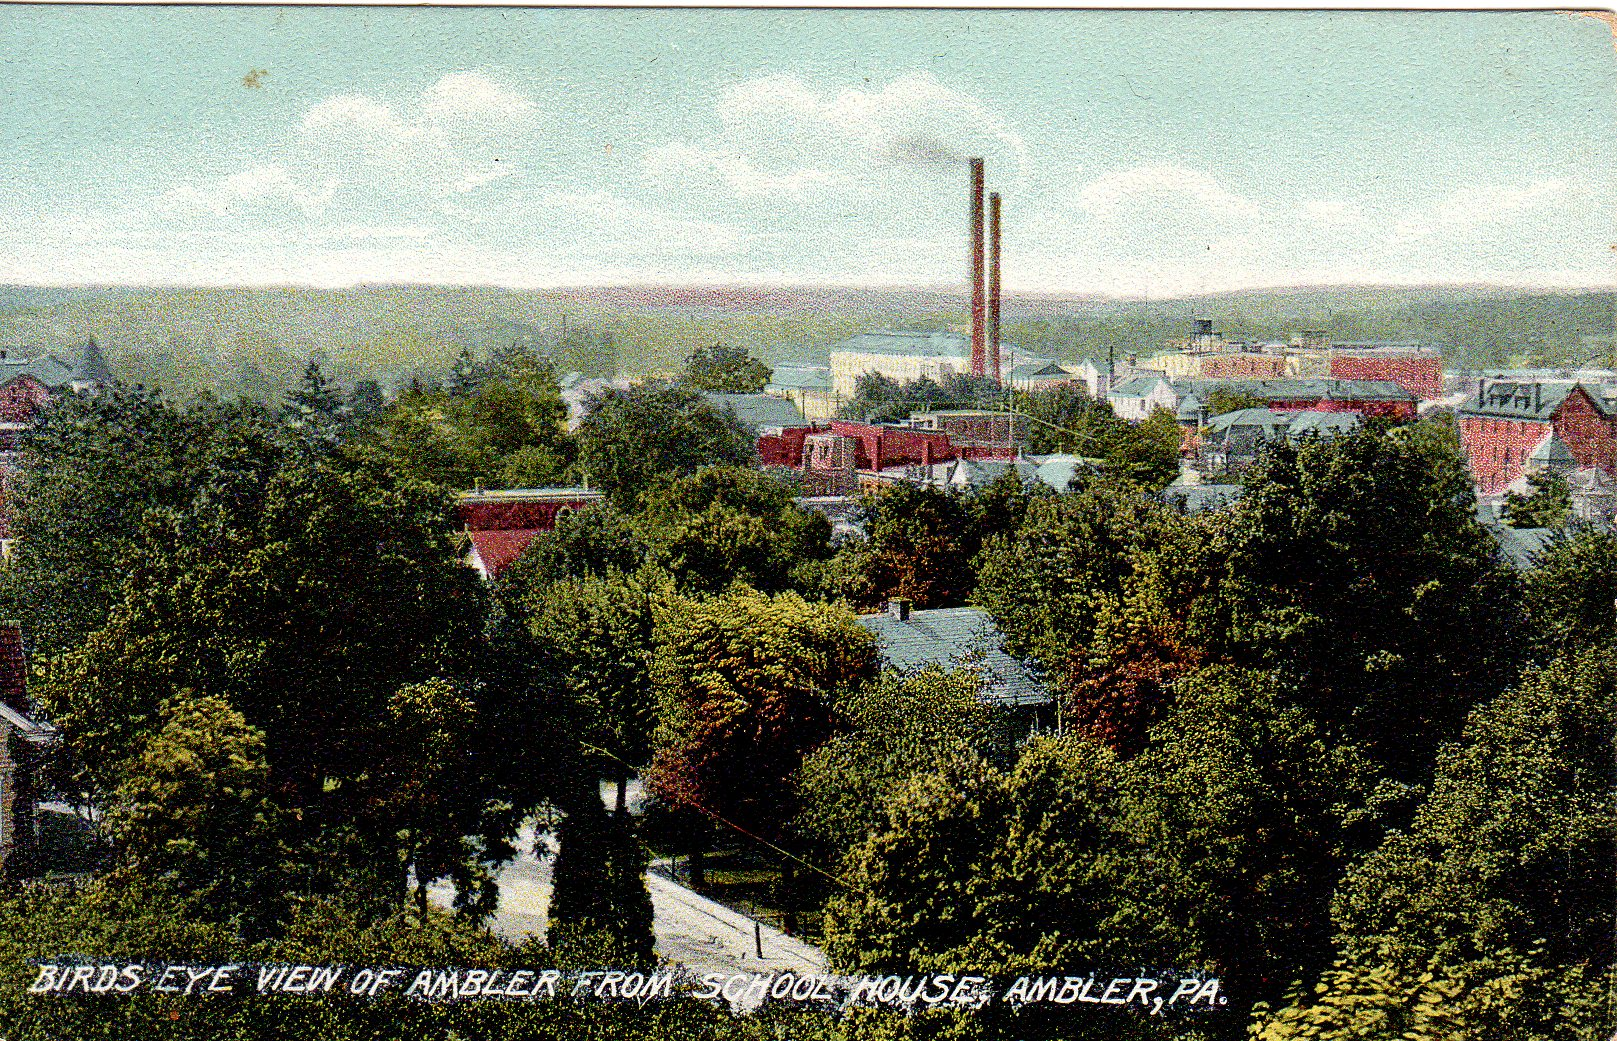 Post Card Collection (E Simon)_2682_61_Birds Eye View of Ambler from School House, Ambler, Pa